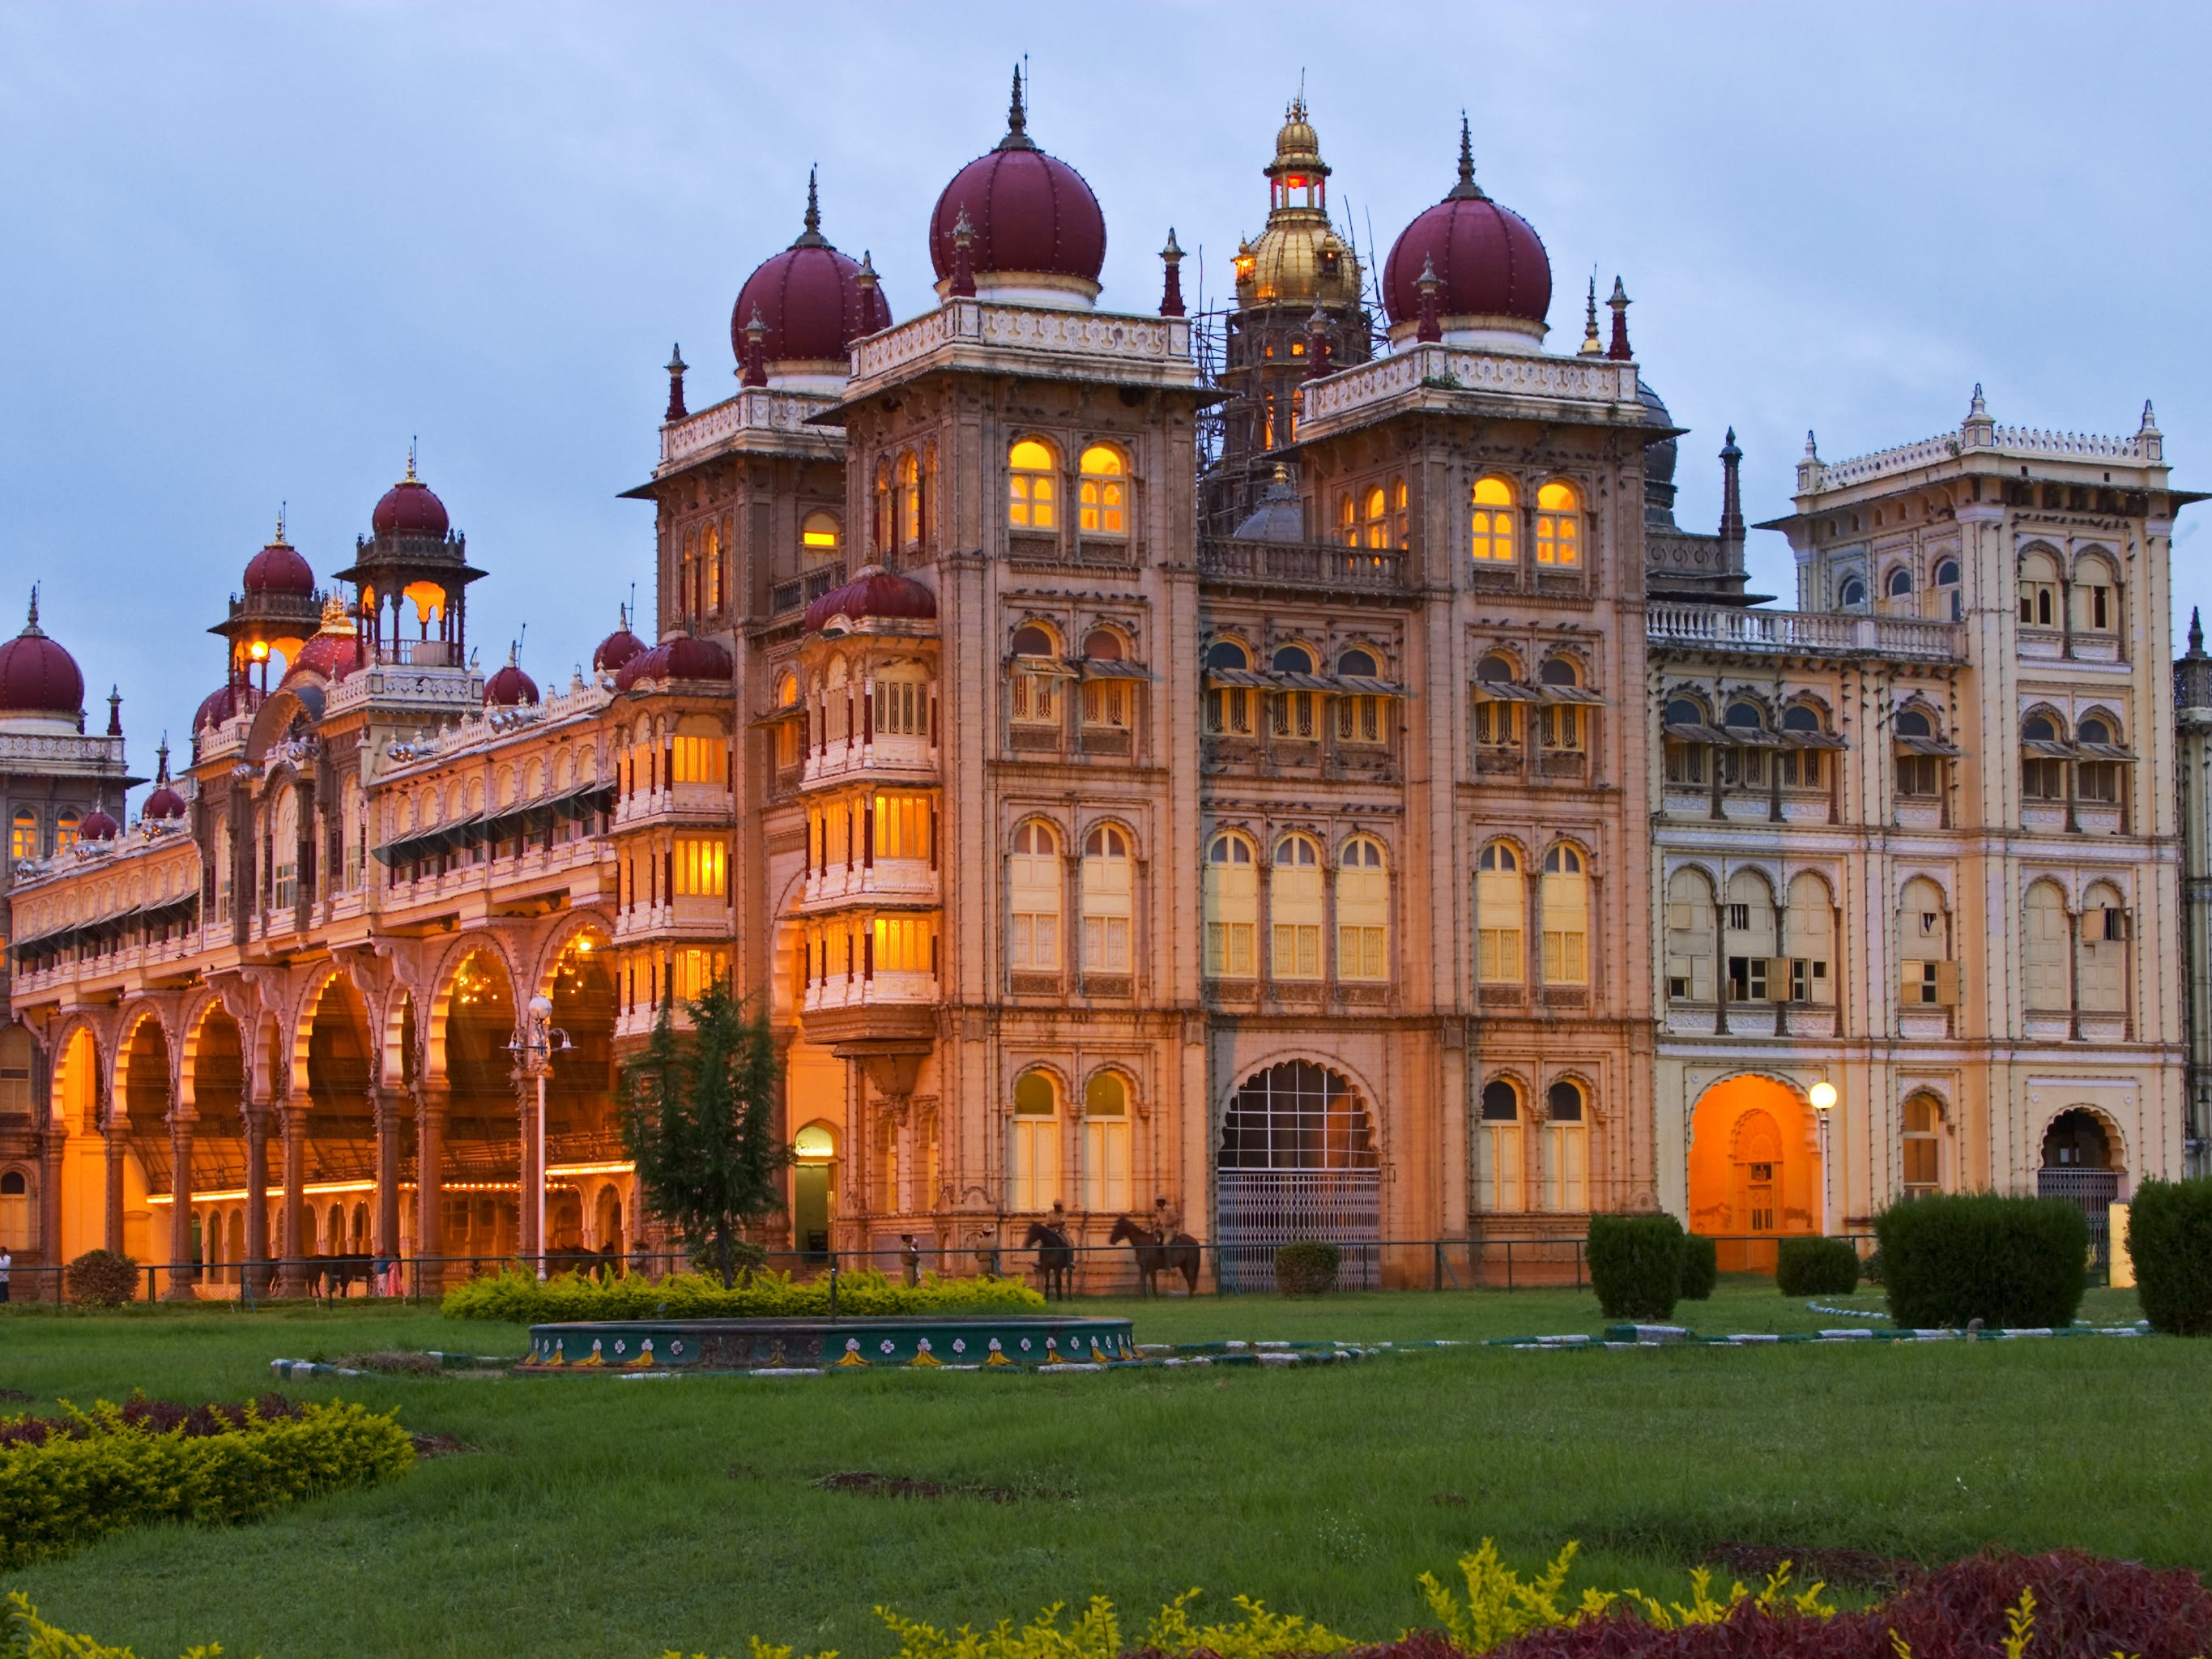 """Amba Vilas Palace in Mysore, India: The city of Mysore is often described as the """"city of palaces,"""" but to visit the grandest of them all, head to Amba Vilas Palace in the Old Fort."""